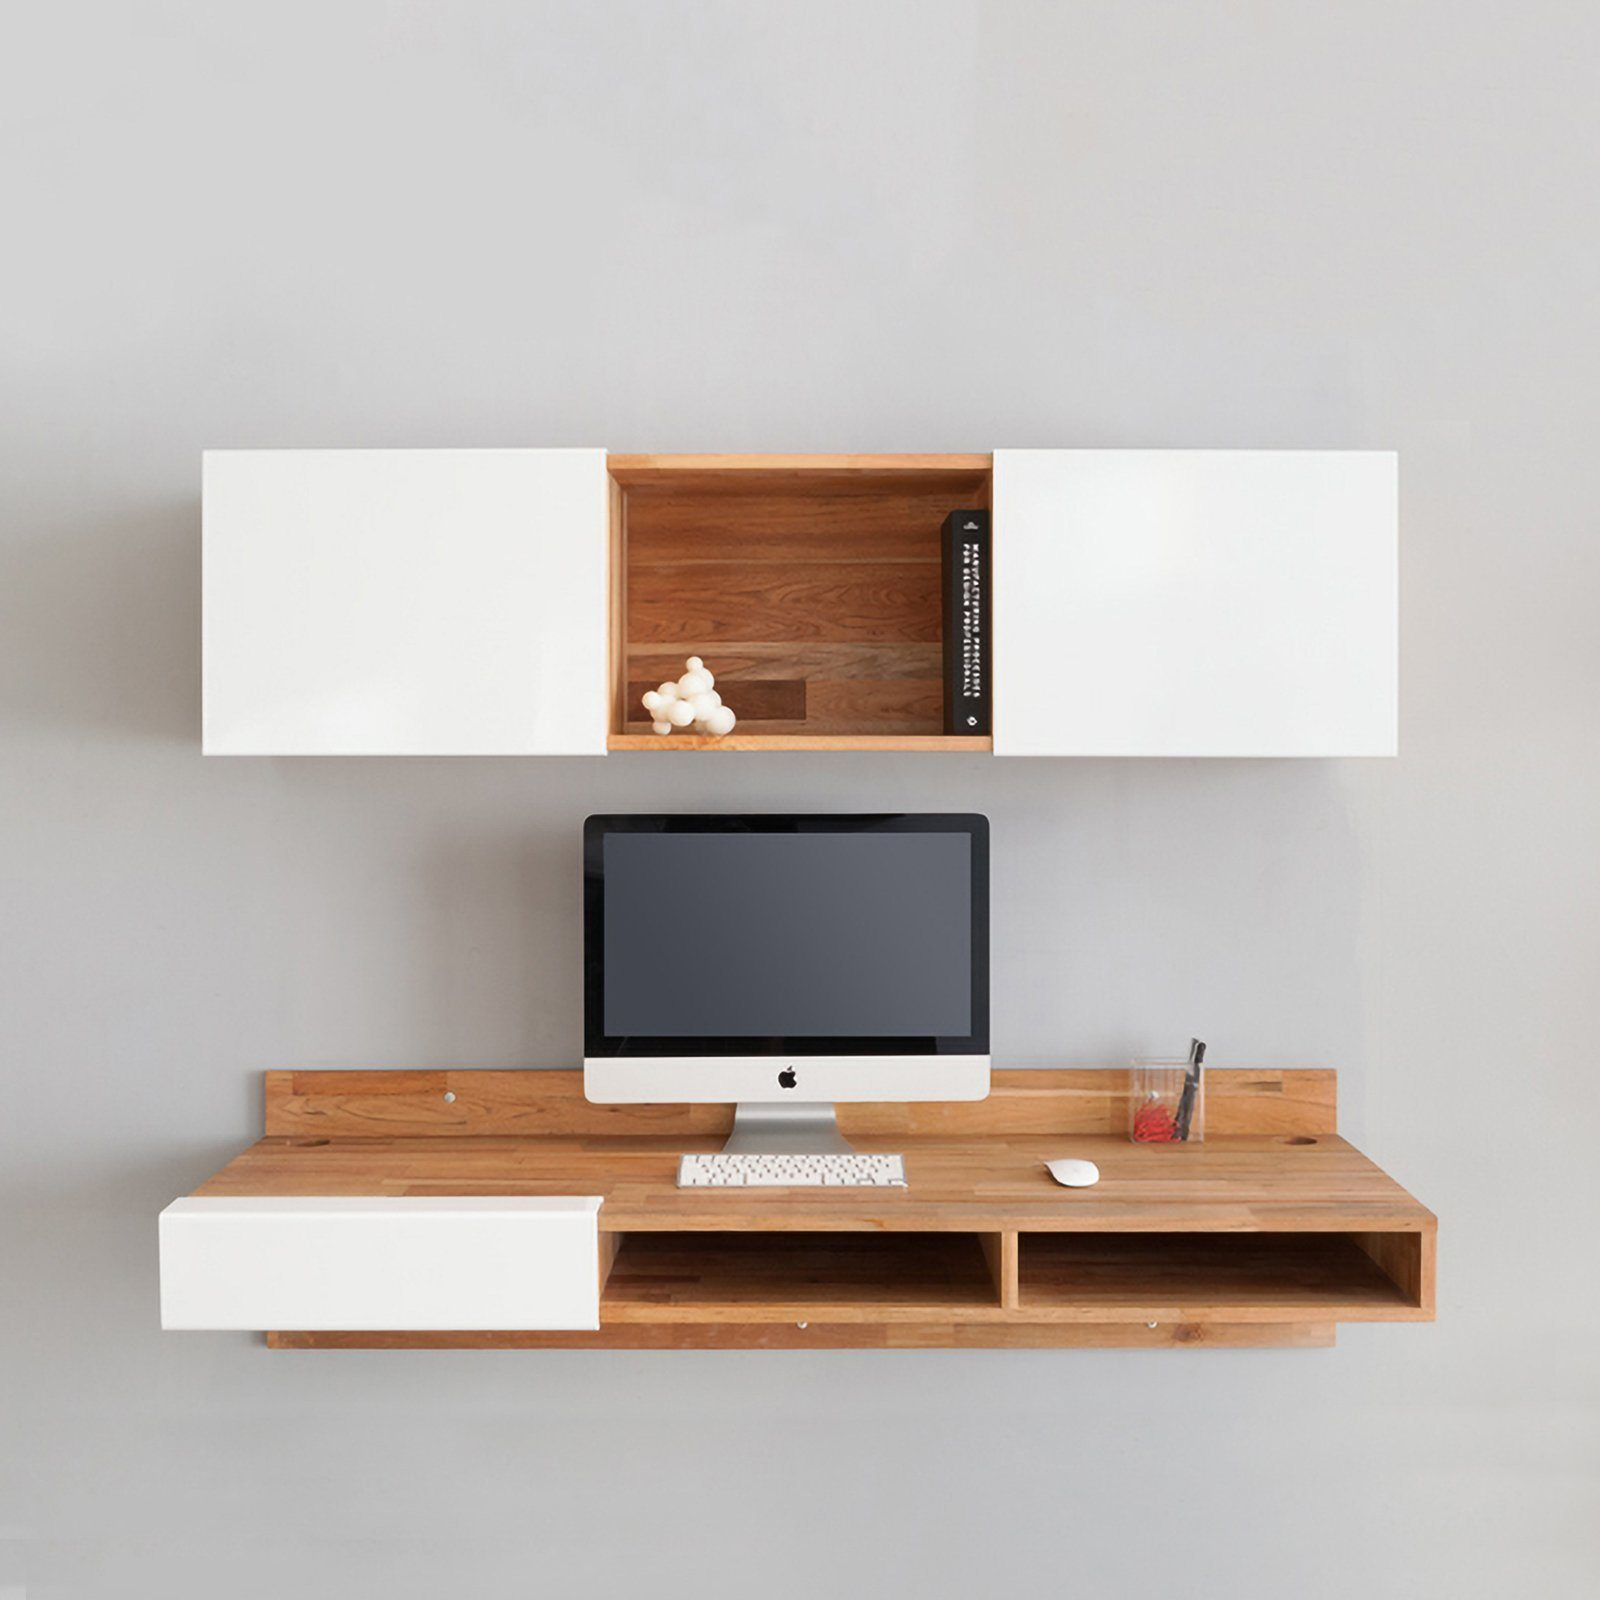 l around frames crate cm for shelf and floating wall ikea white in bat photo barrel shelves ledge picture mosslanda